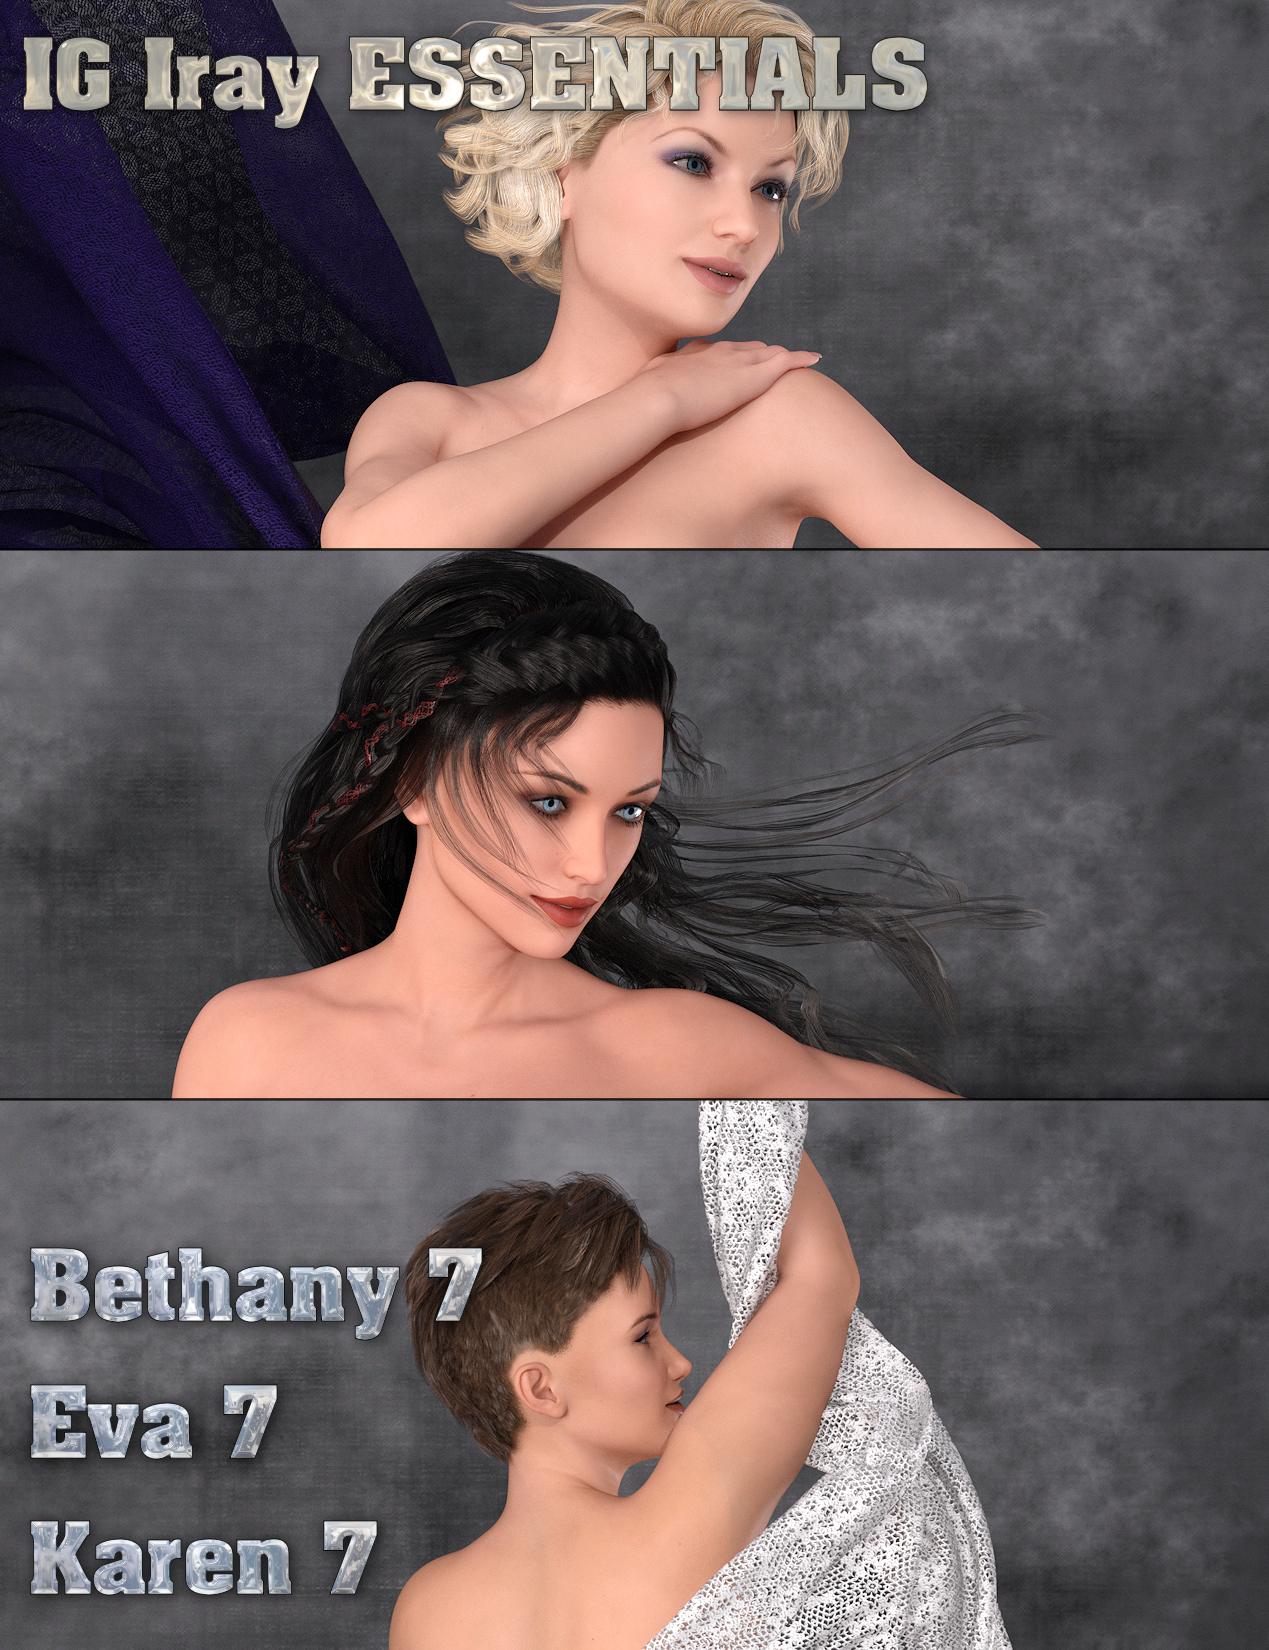 IG Iray Essentials - Bethany 7, Eva 7 and Karen 7 by: IDG DesignsInaneGlory, 3D Models by Daz 3D